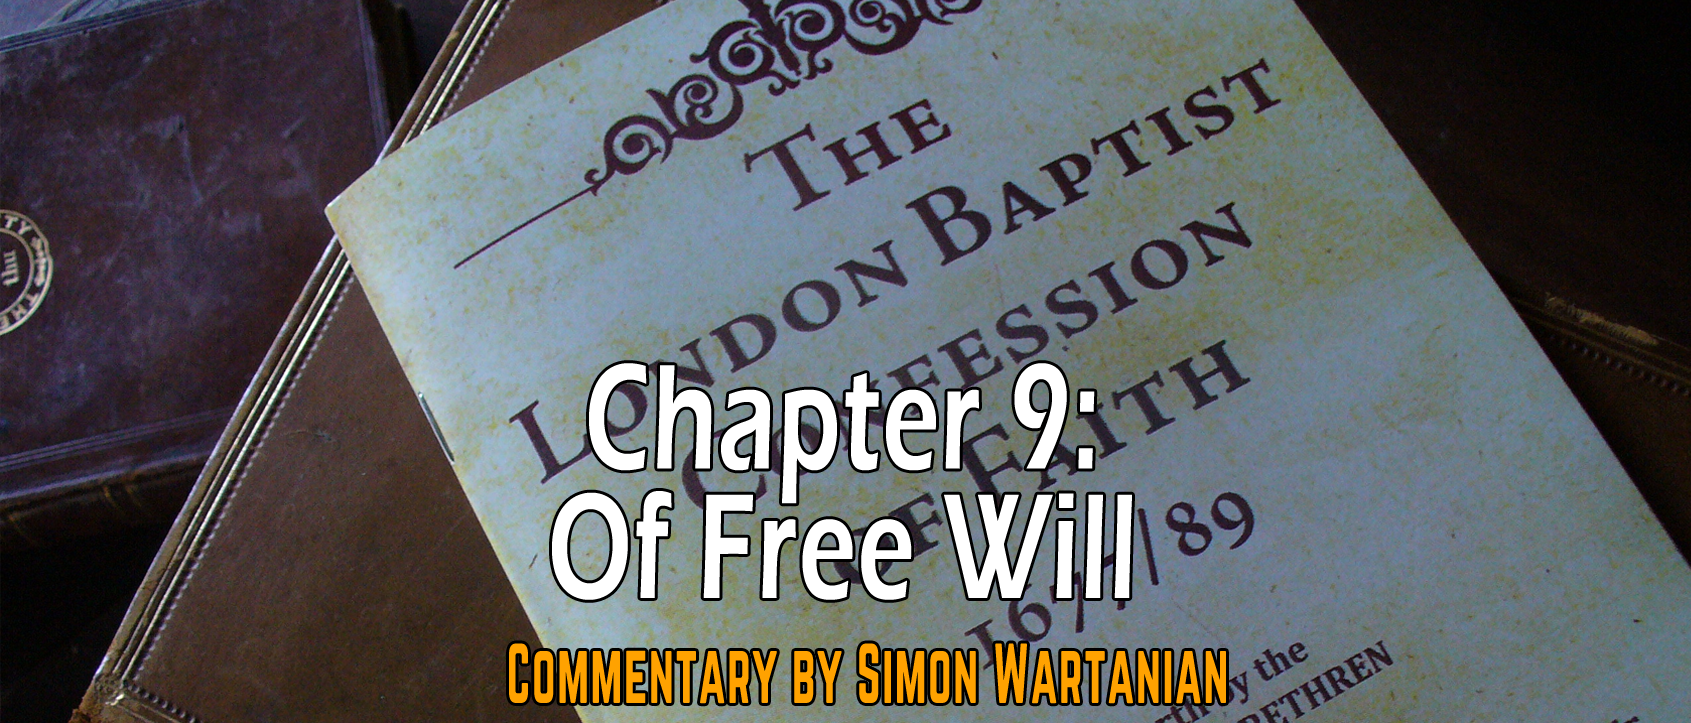 1689 Baptist Confession Chapter 9: Of Free Will - Commentary